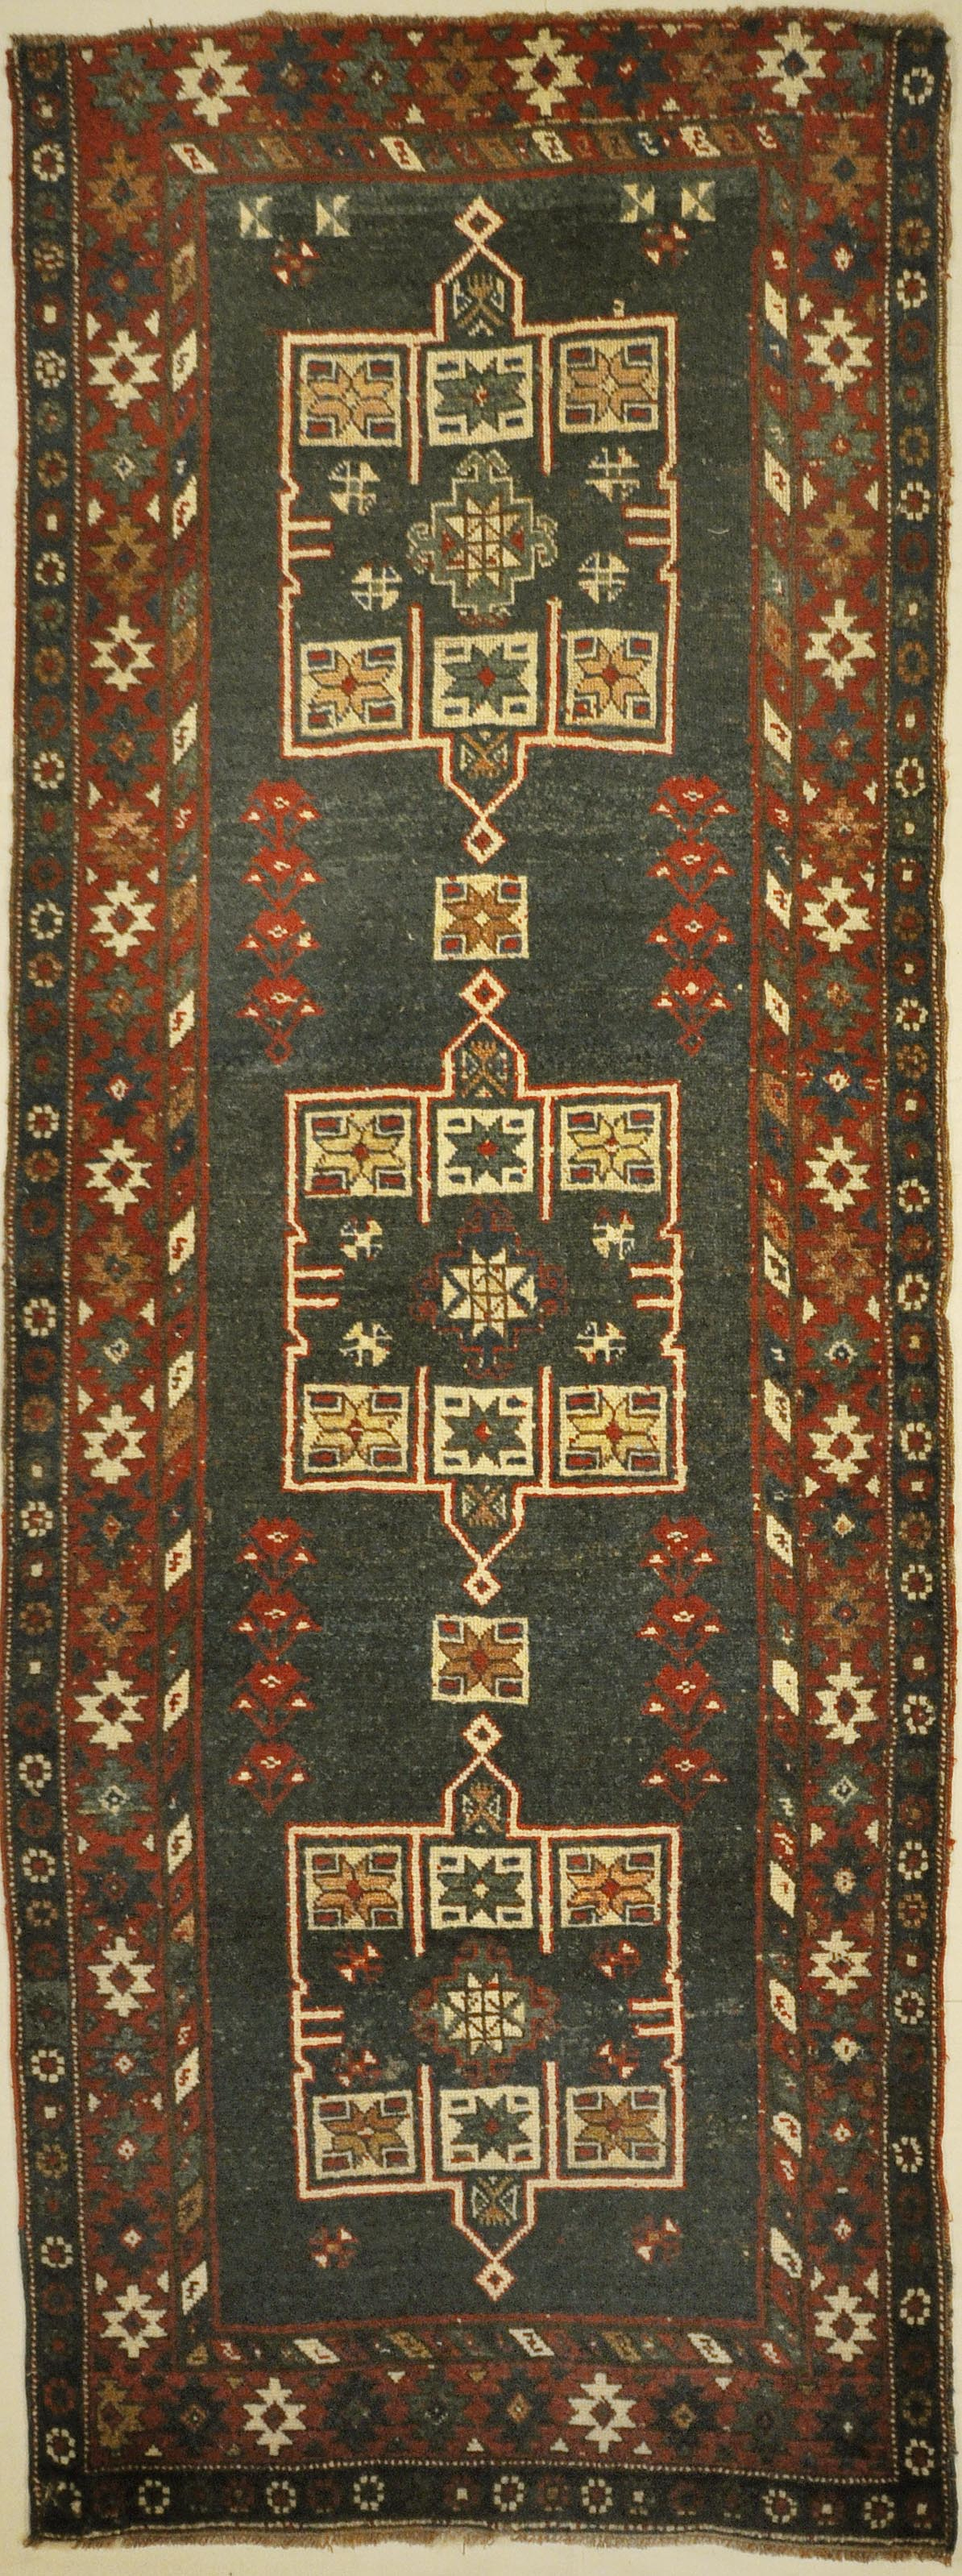 Antique turkish rugs and more oriental carpet 35612-